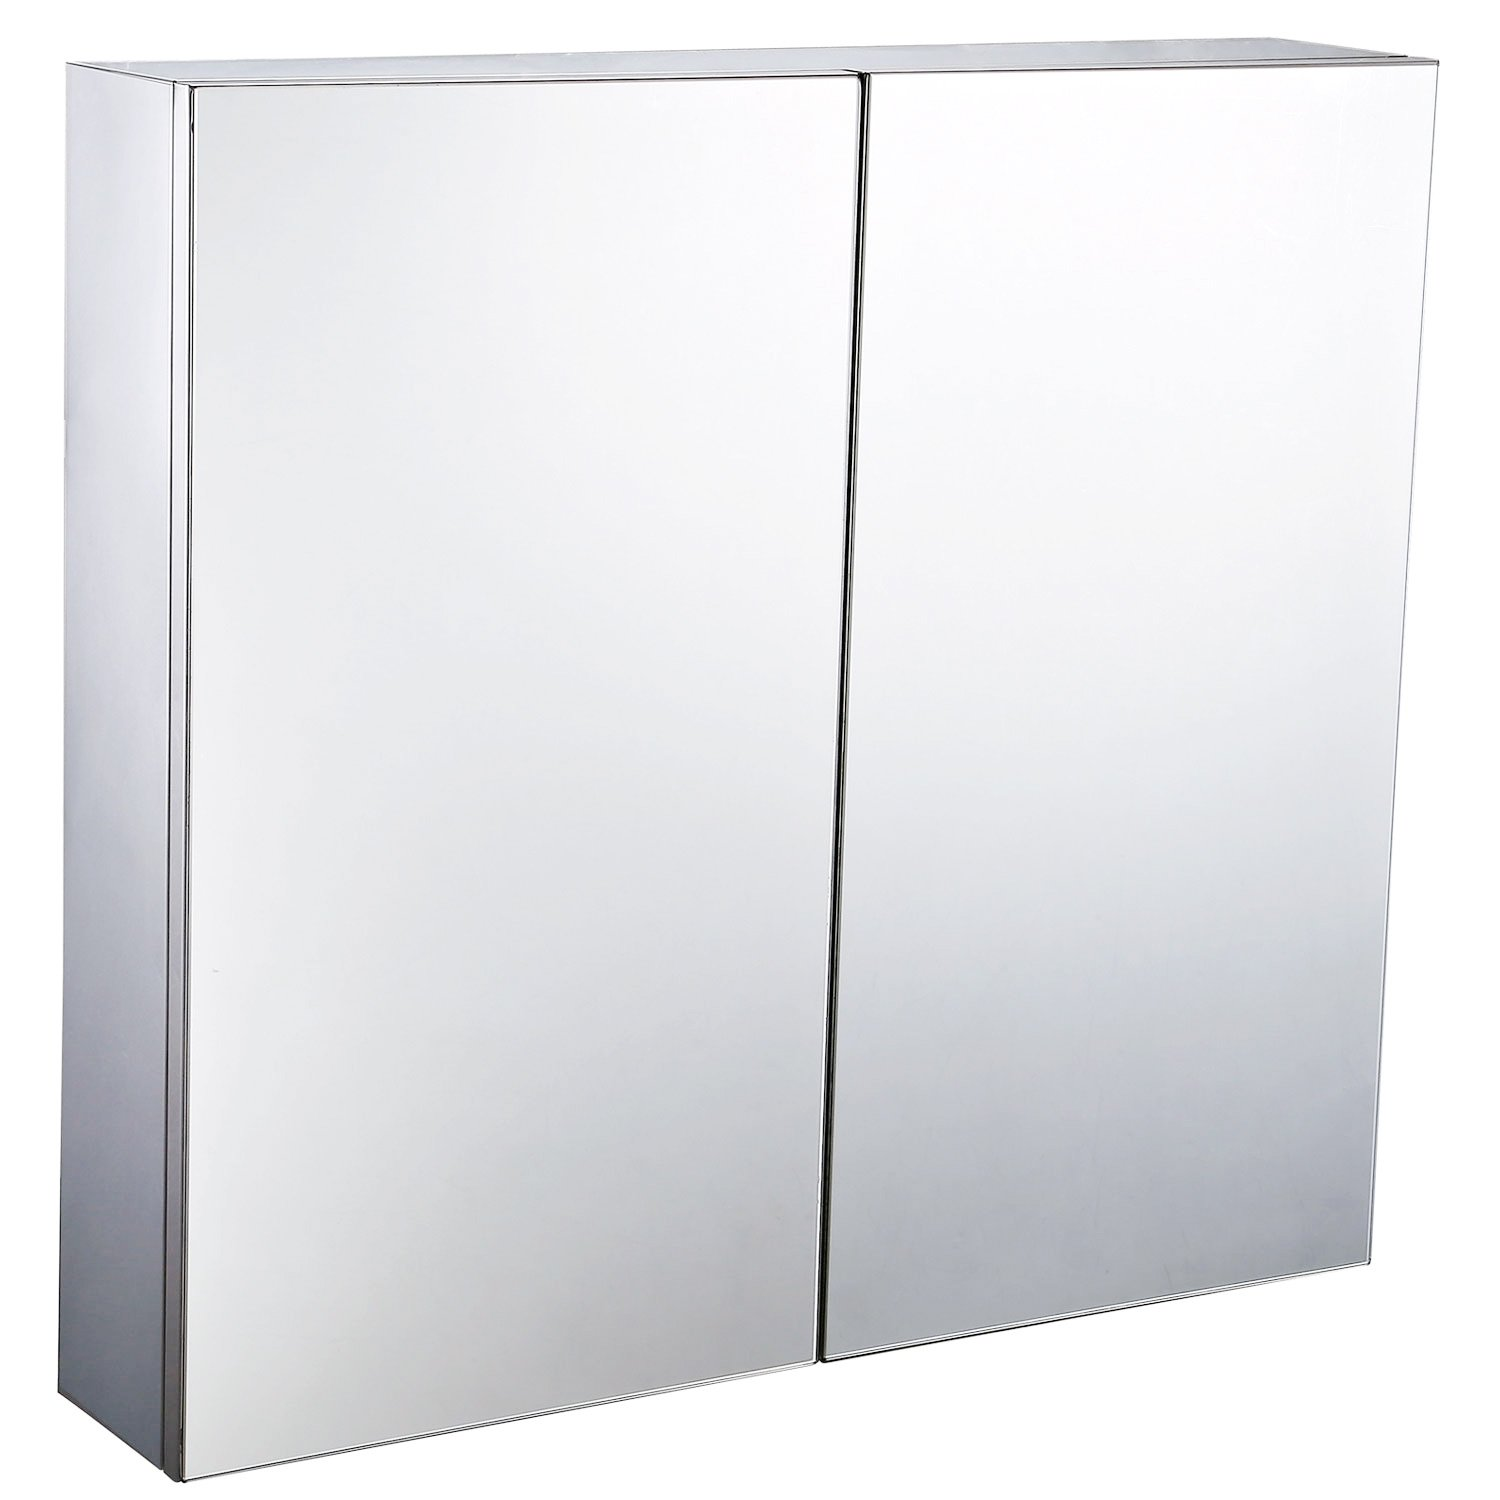 Homcom Stainless Steel Wall Mounted Bathroom Mirror Storage Cabinet Double Doors 600mm W Amazoncouk Kitchen Home